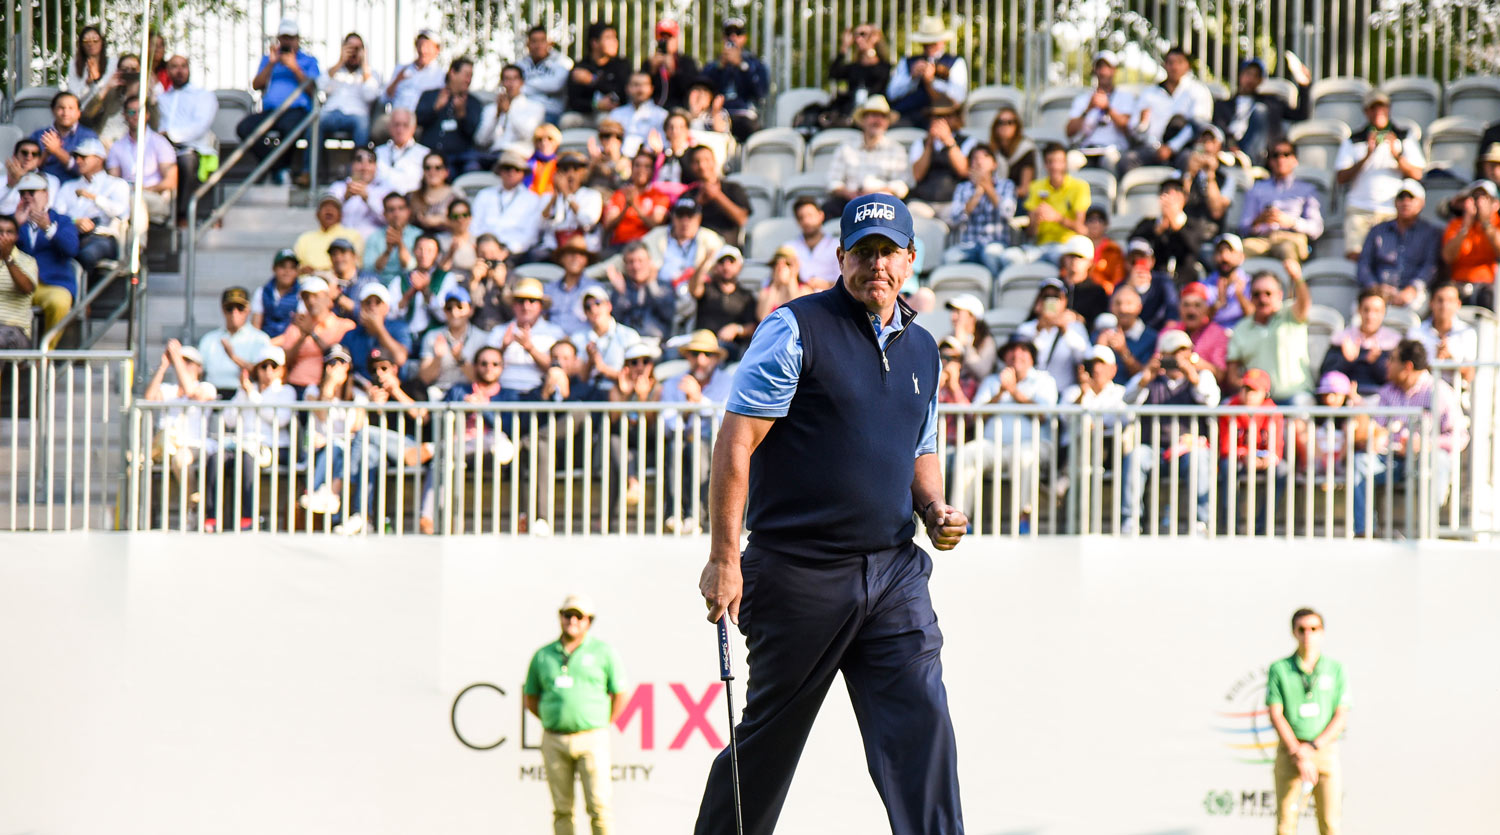 McIlroy lurks, Scott struggling in Mexico